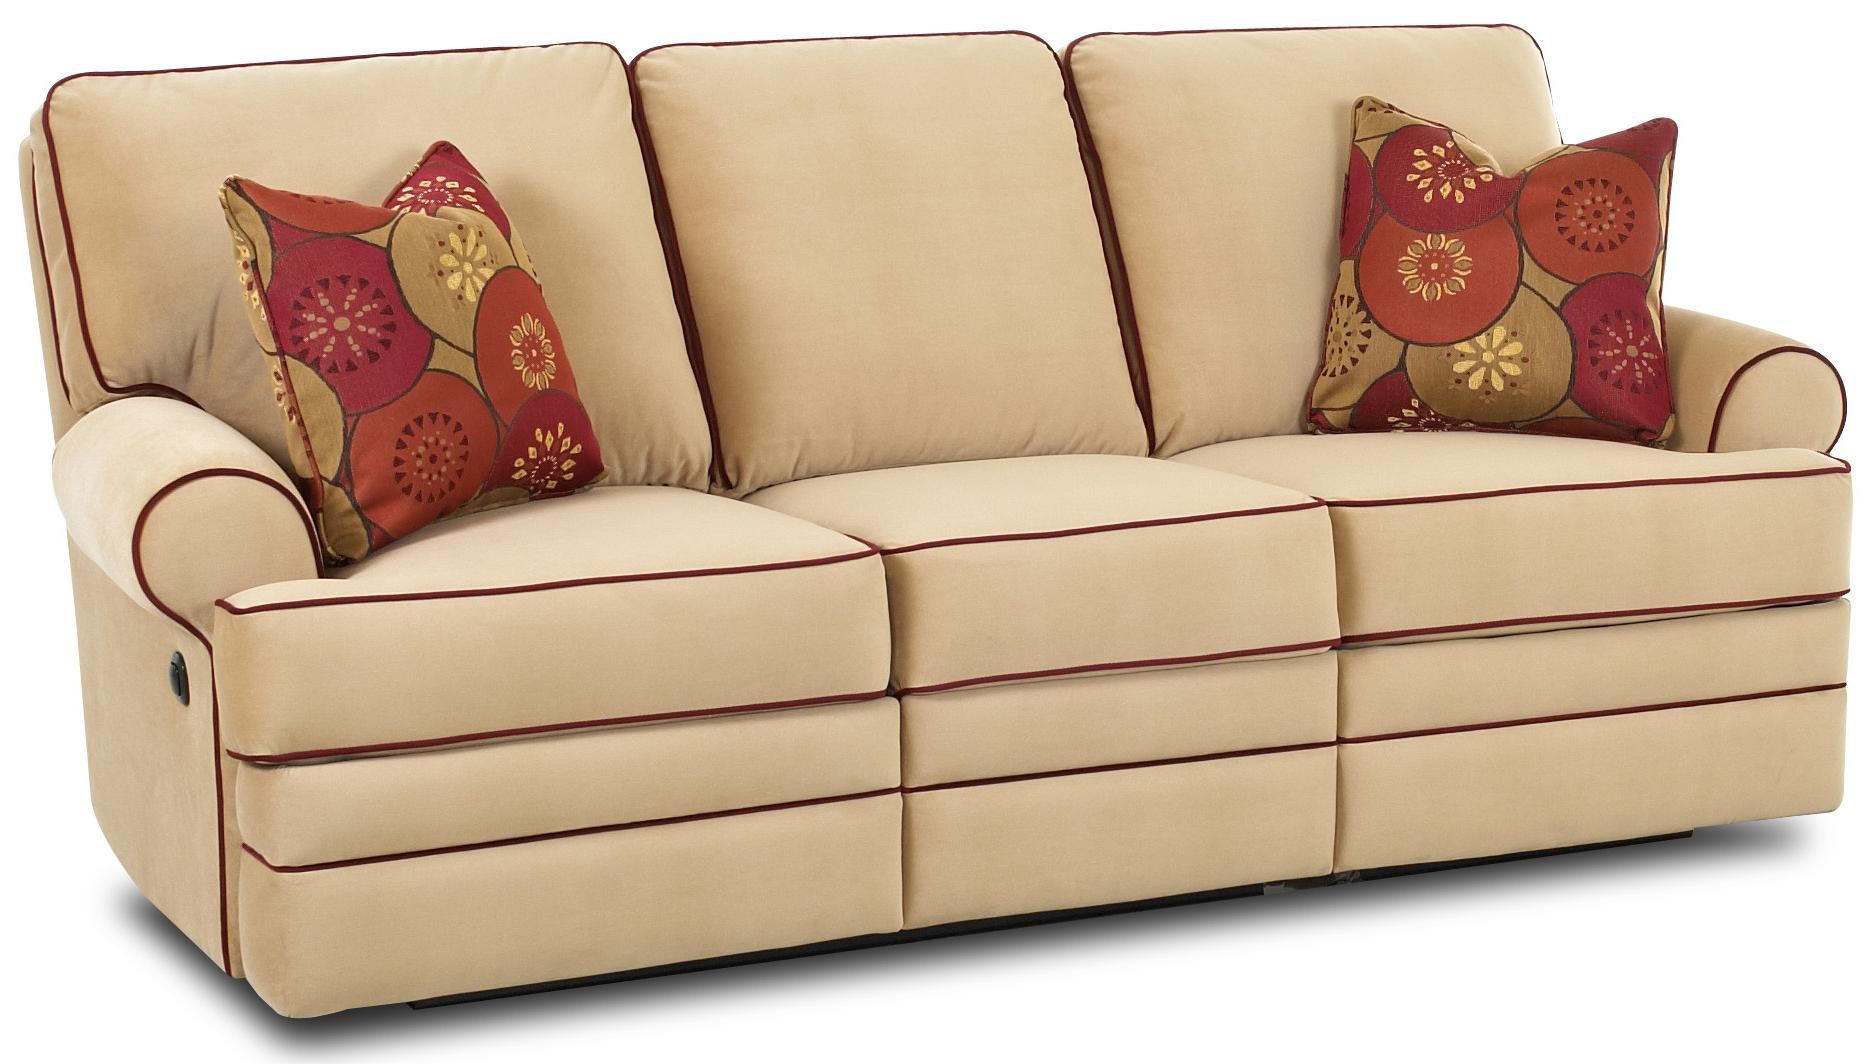 Belleview power dual reclining sofa by klaussner wolf furniture Loveseats that recline